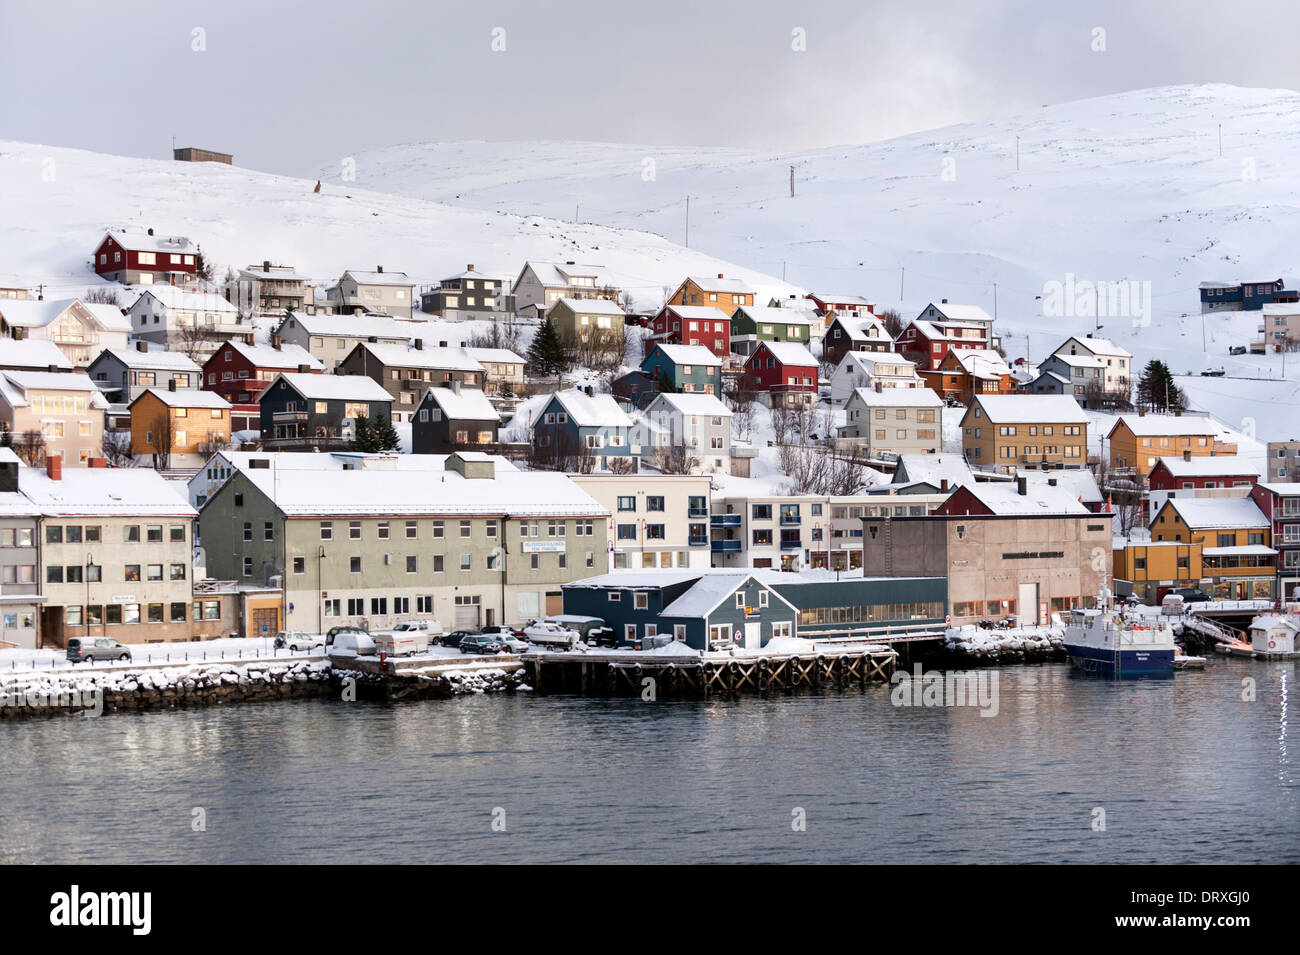 The waterfront of the coastal city and port of Honningsvåg, Nordkapp municipality. Finnmark County, North Norway - Stock Image